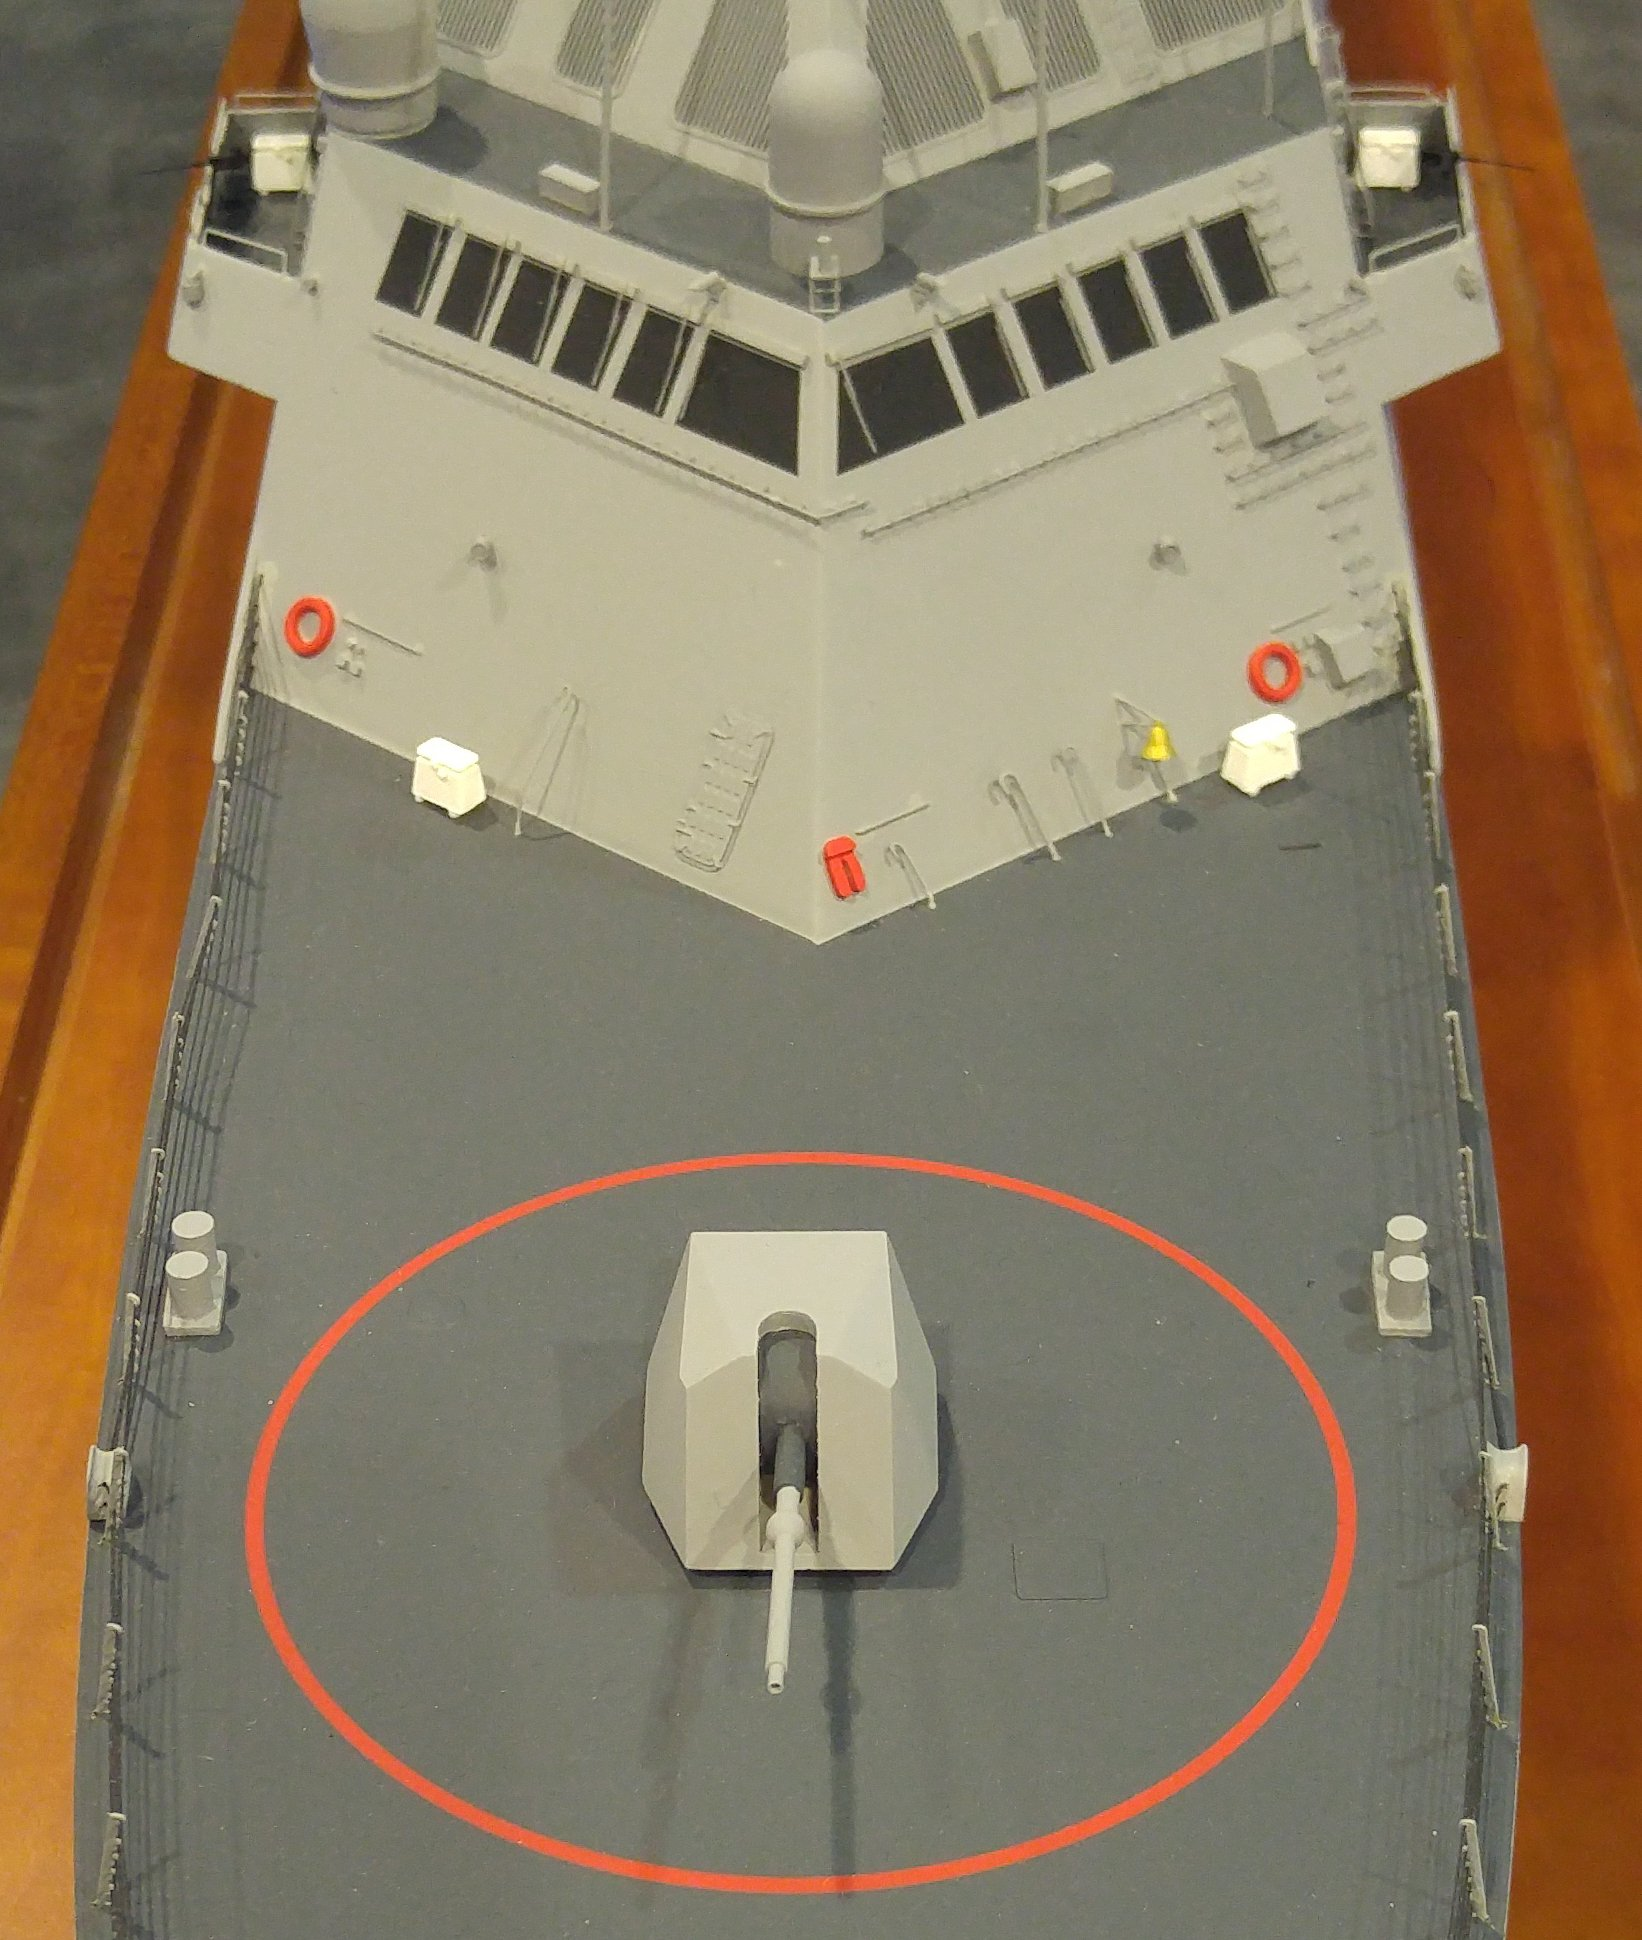 Lockheed Martin Multi-Mission Surface Combatant model. USNI News Photo